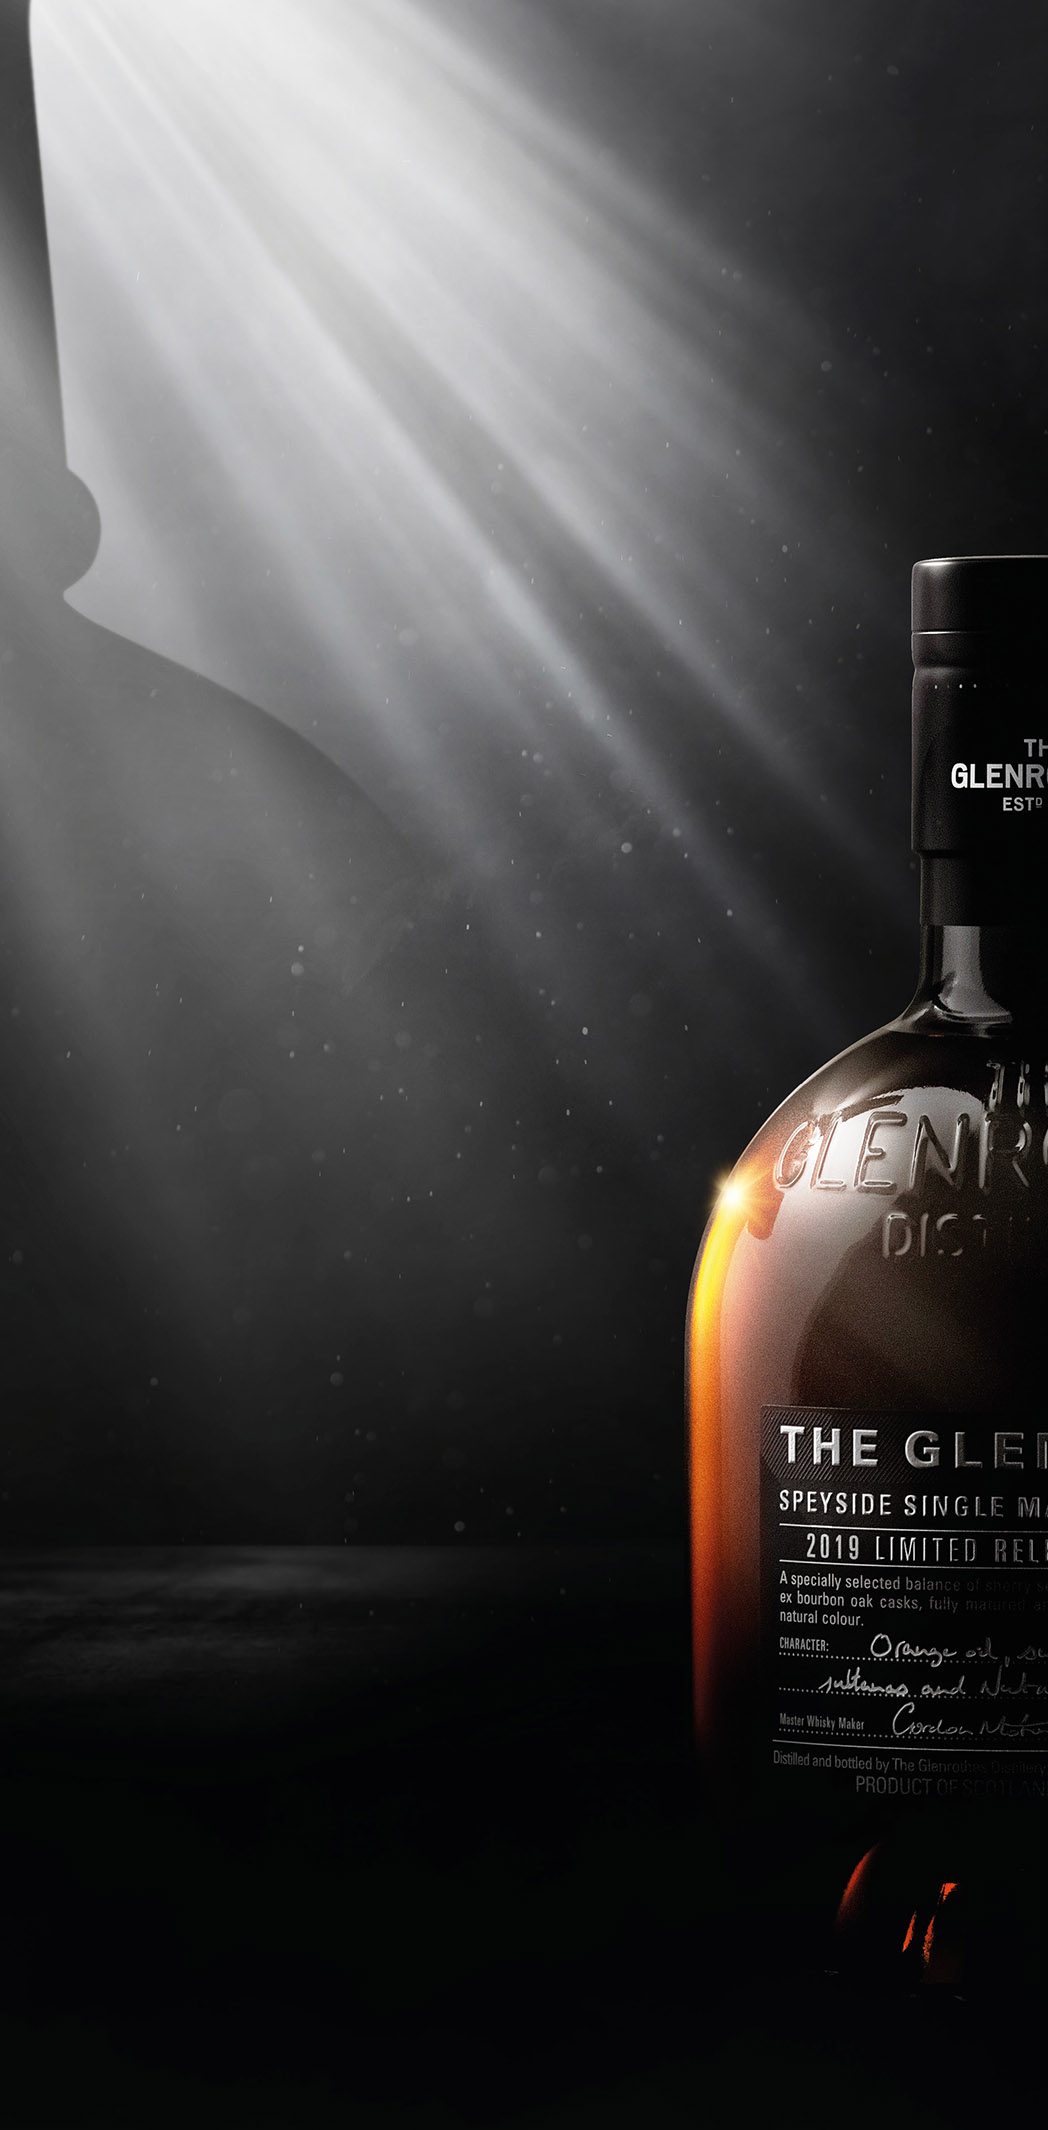 The Glenrothers 40YO